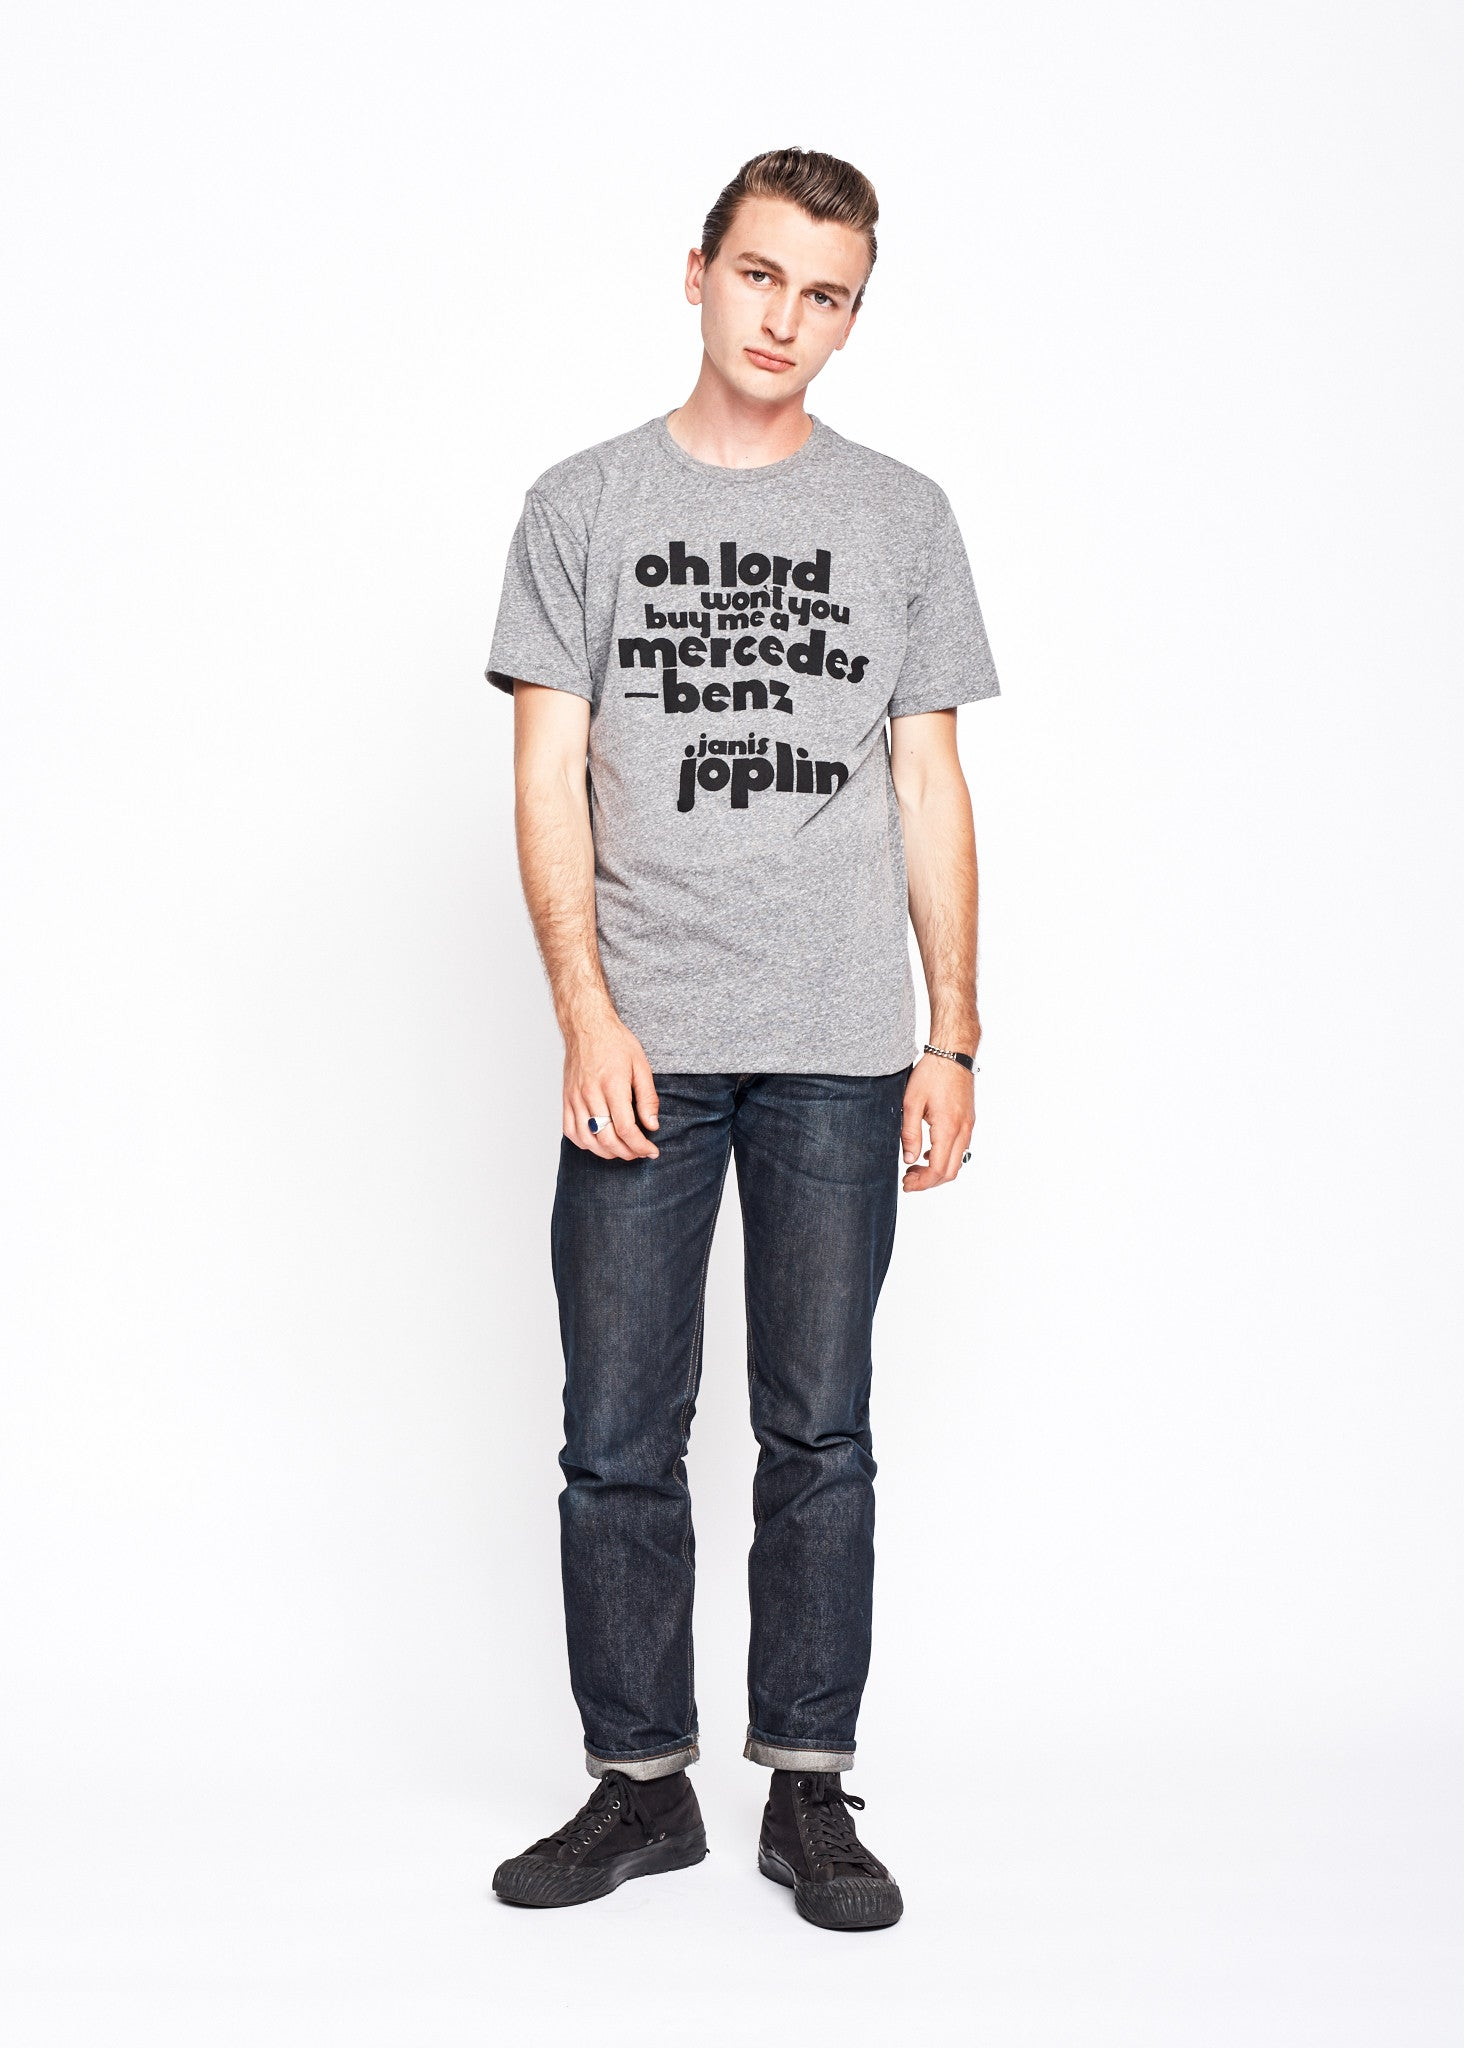 Janis Joplin Mercedes Benz Men's Crew - Heather Grey - Men's Tee Shirt - Midnight Rider